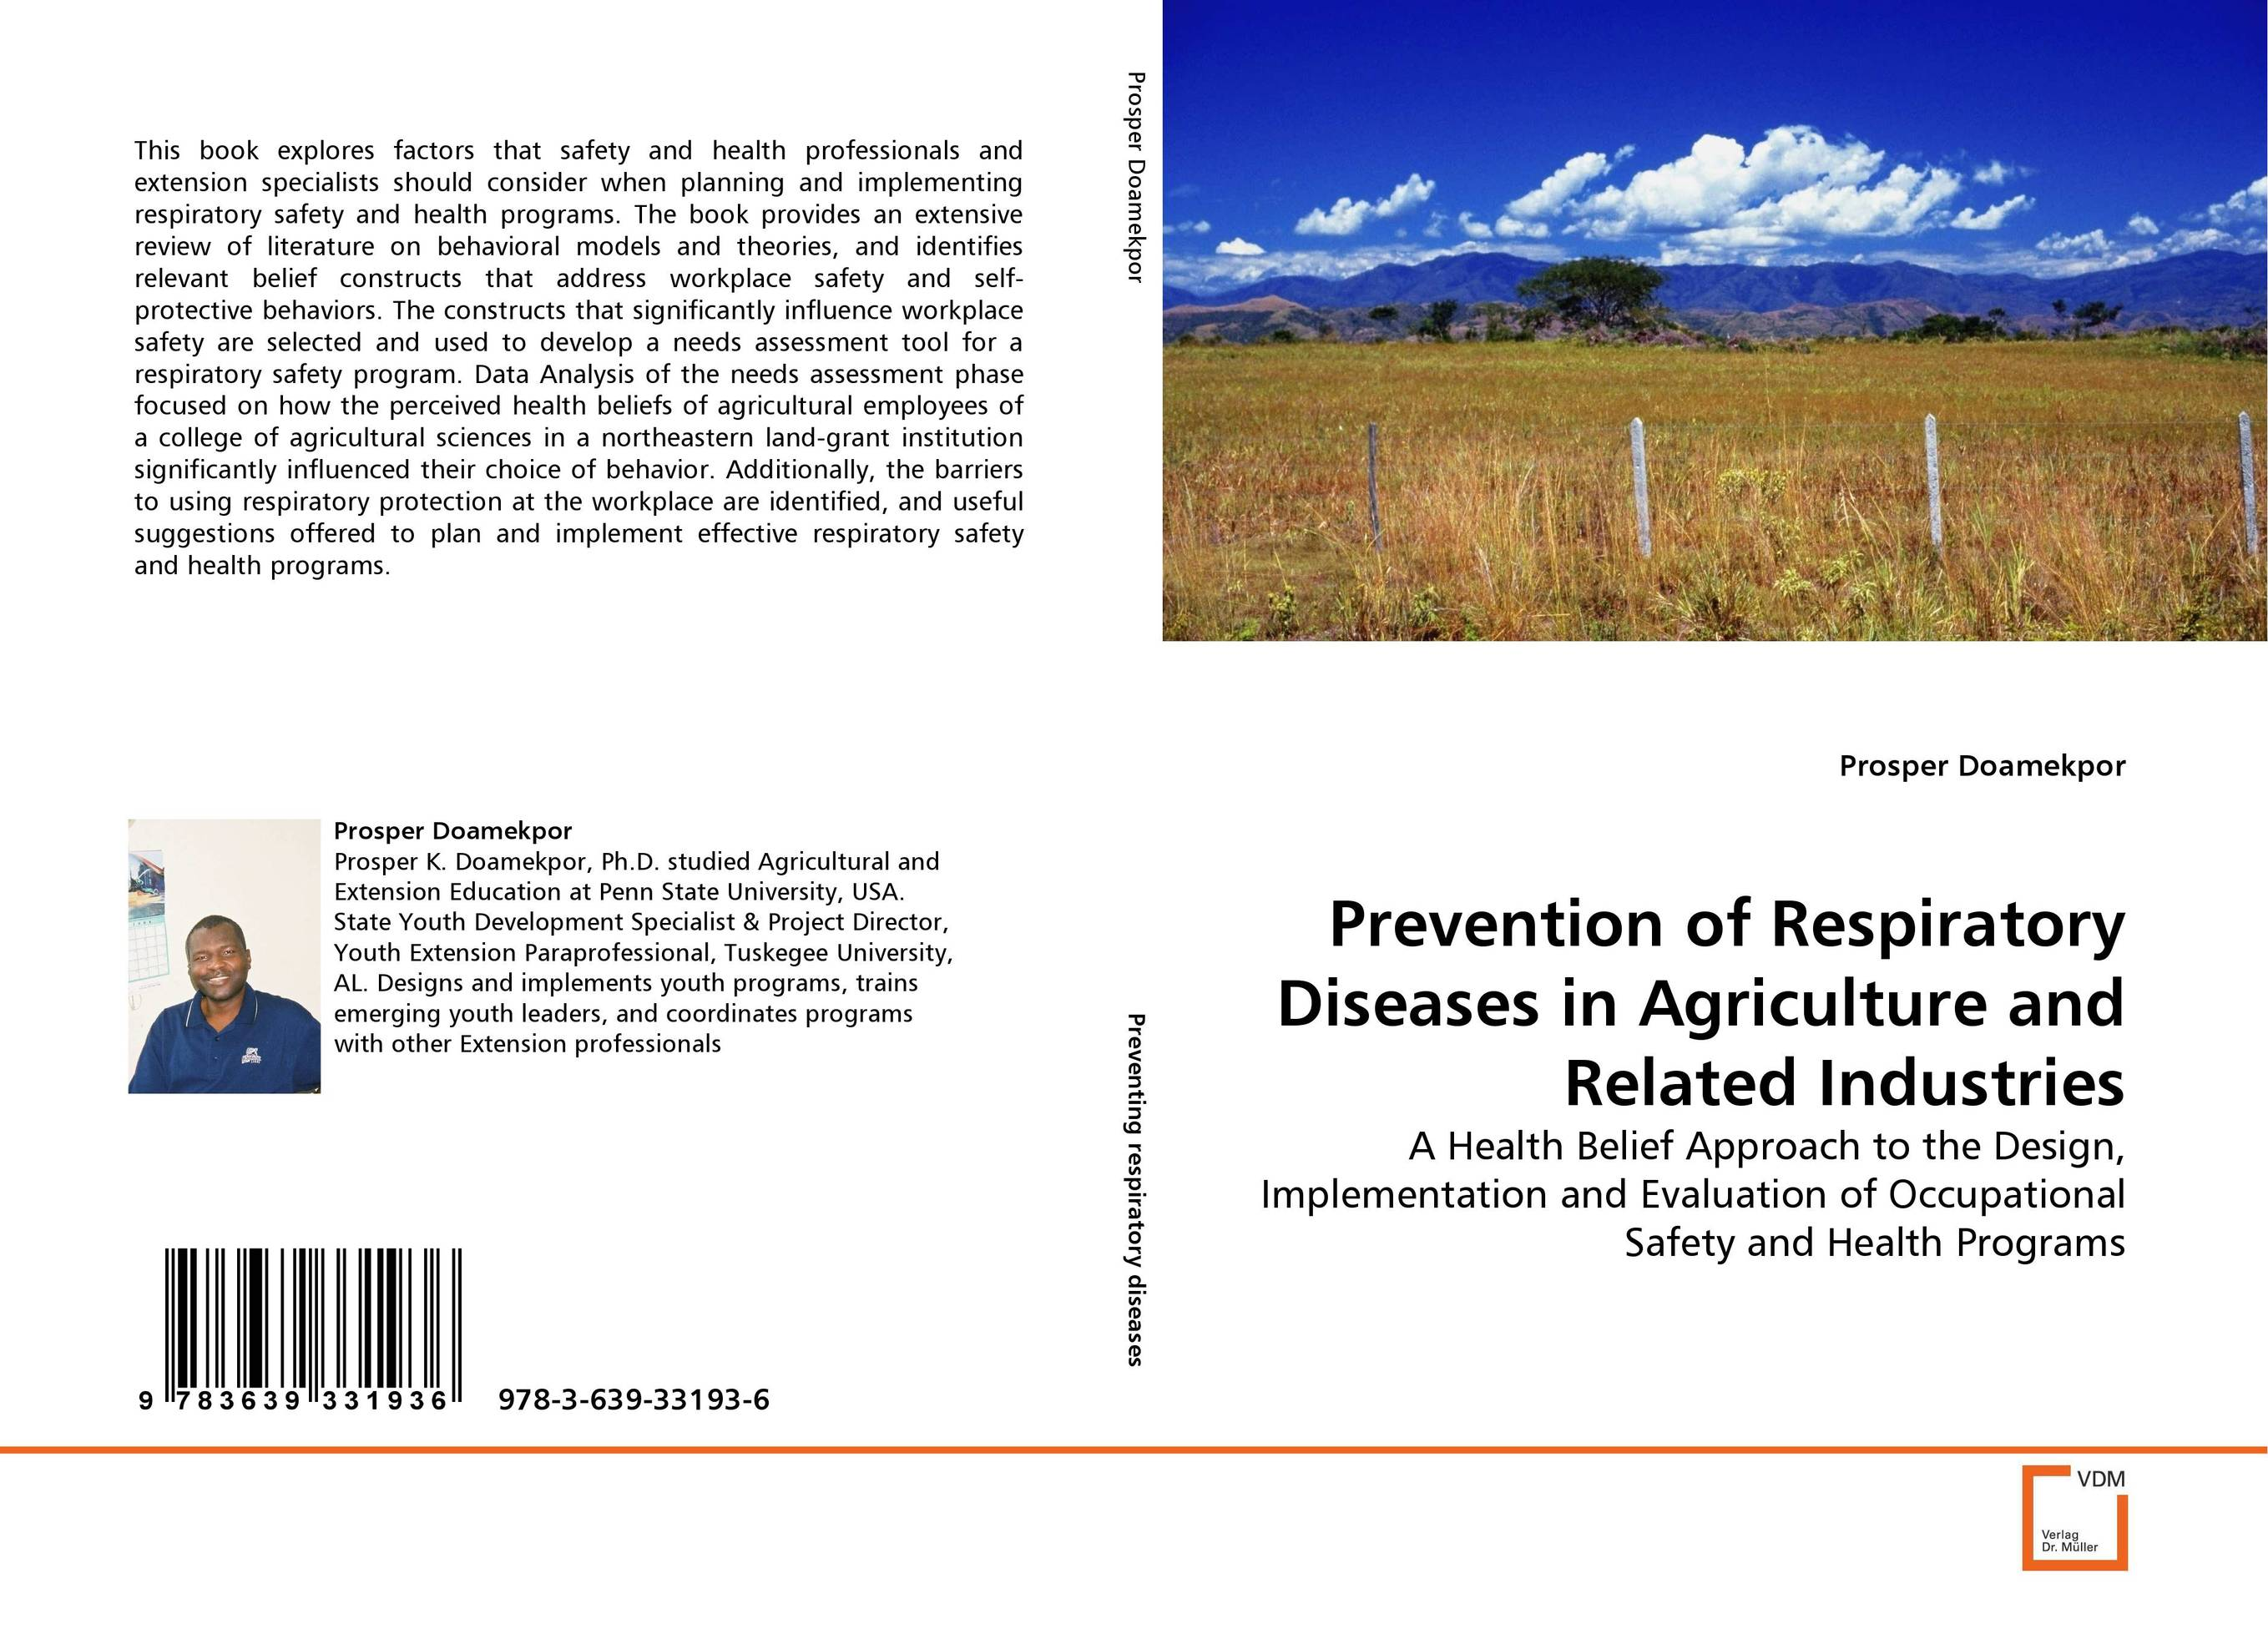 Prevention of Respiratory Diseases in Agriculture and Related Industries o fredholm loss prevention and safety promotion in the process industries